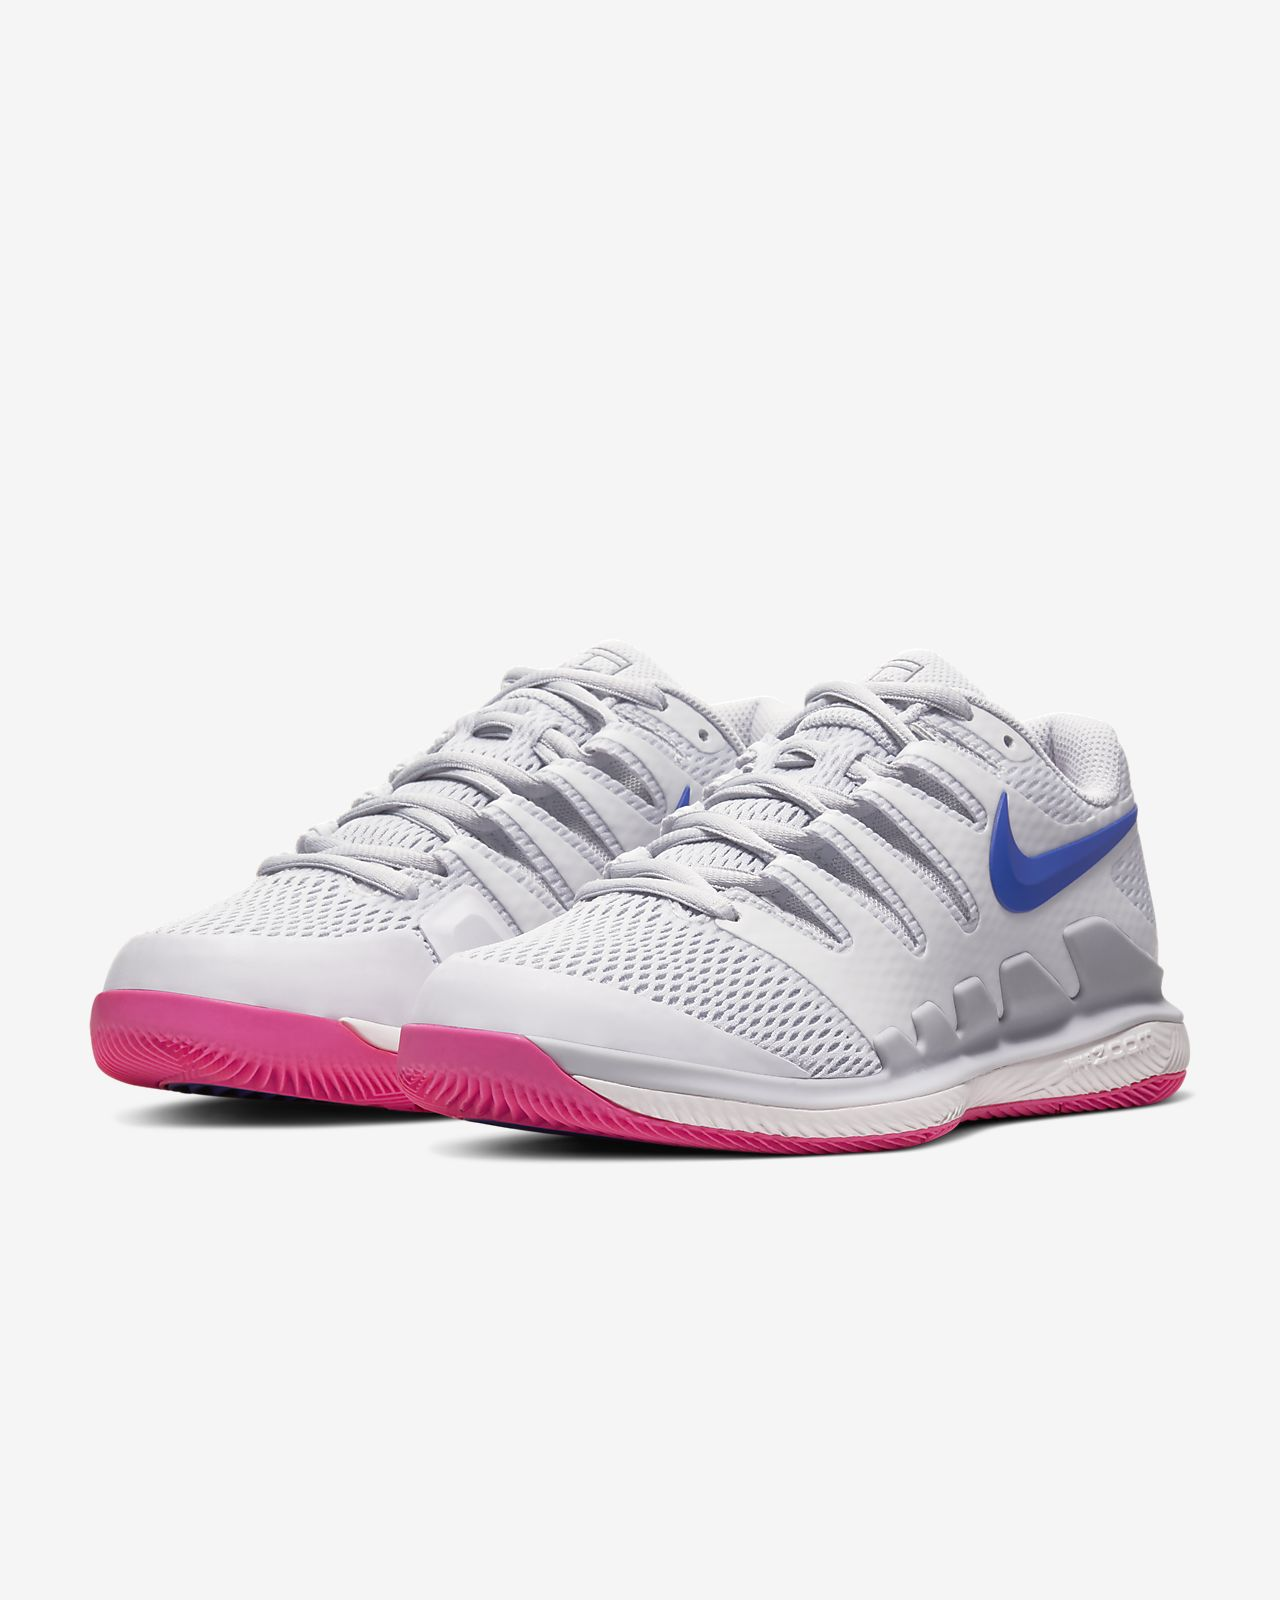 Nike Women's Nike Air Zoom Vapor X Tennis Shoe from NORDSTROM | Real Simple